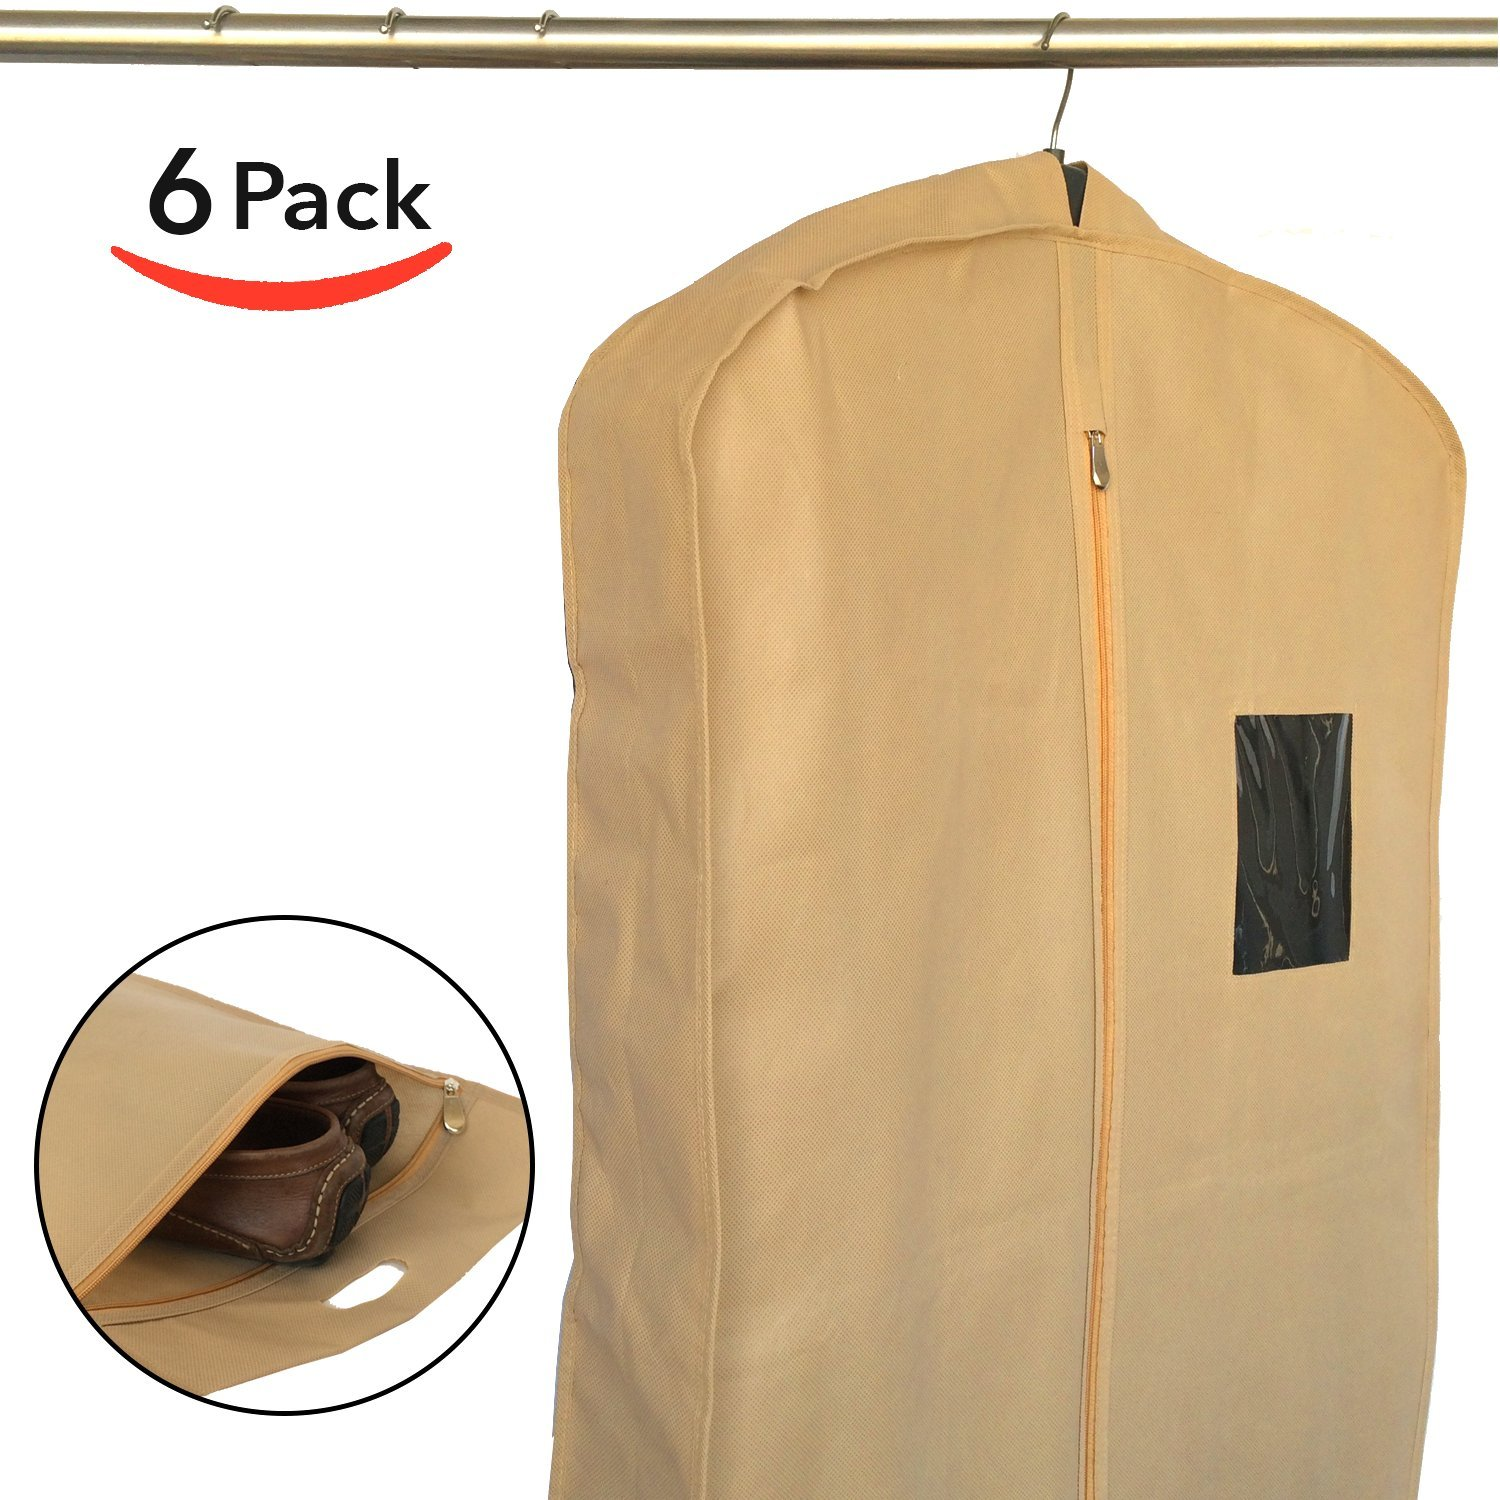 Set of 6 Breathable Garment Bags for Clothes Storage, Travel - Suit Bag Cover for Men by Home Haven